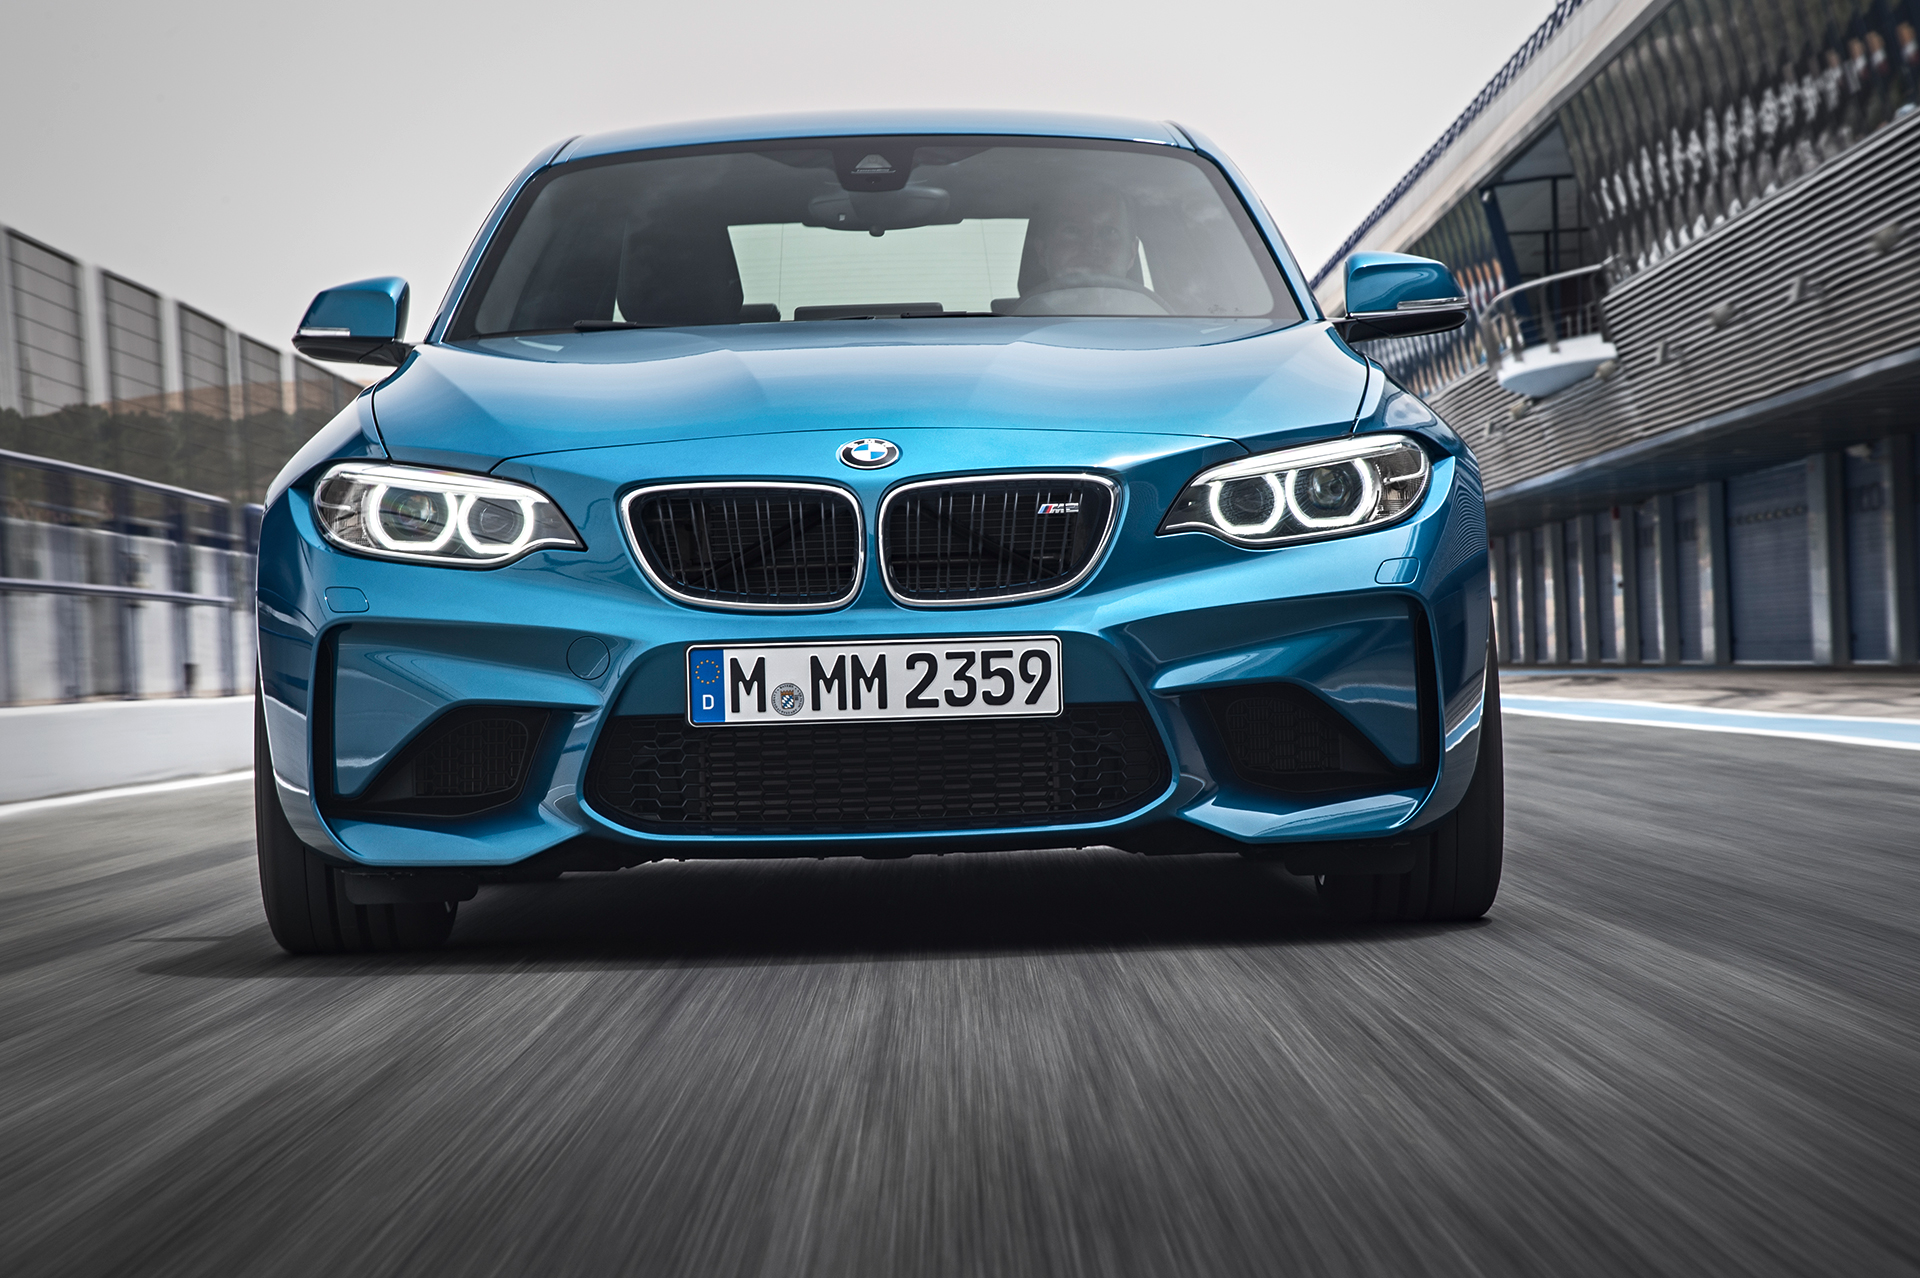 BMW M2 - 2016 - avant / front - sur circuit / on track